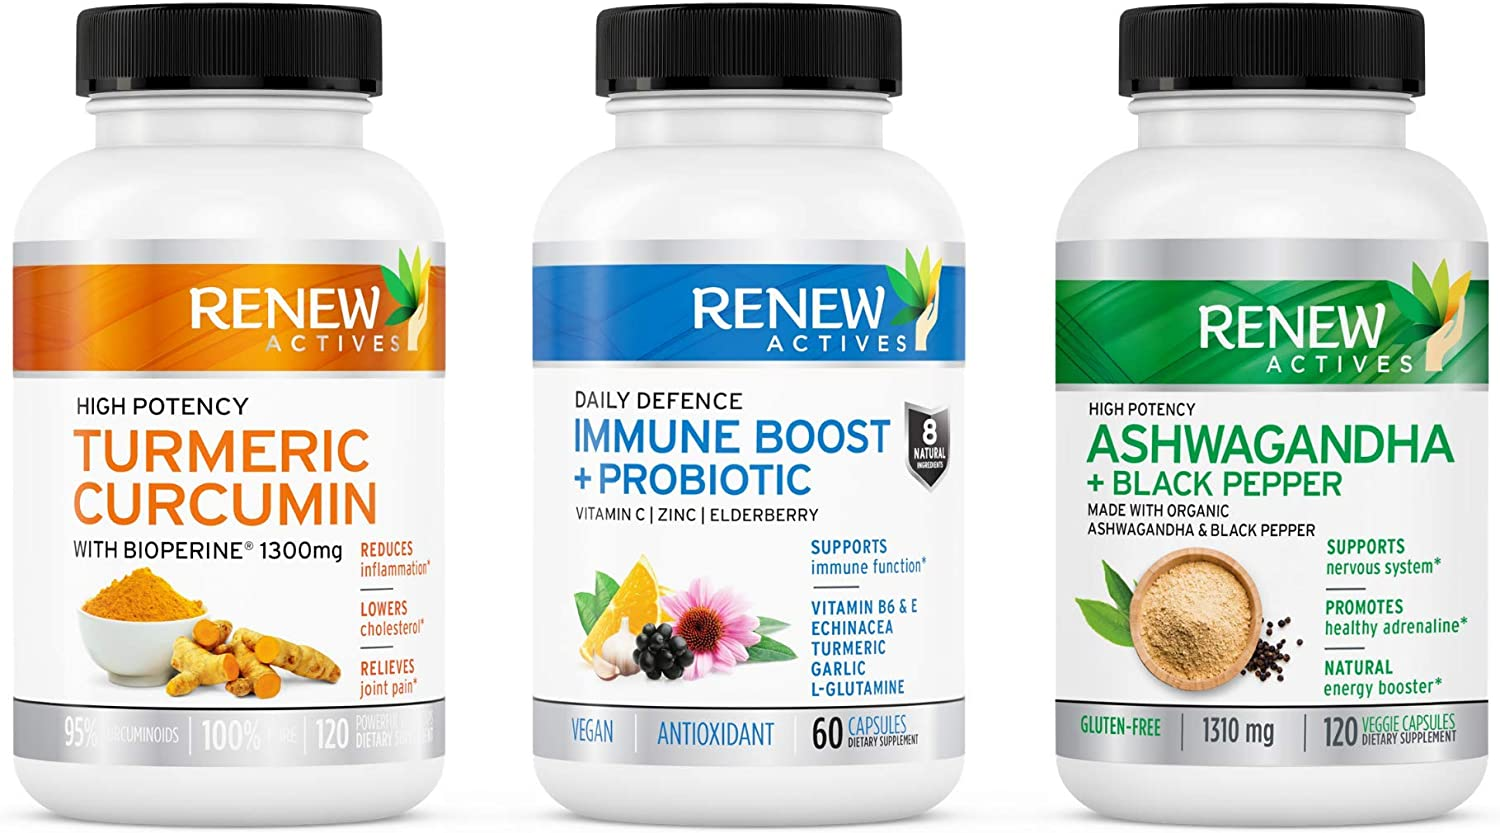 Renew Actives 3 in 1 2021 new Supplement Curcumin Bundle + Imm - Turmeric NEW before selling ☆